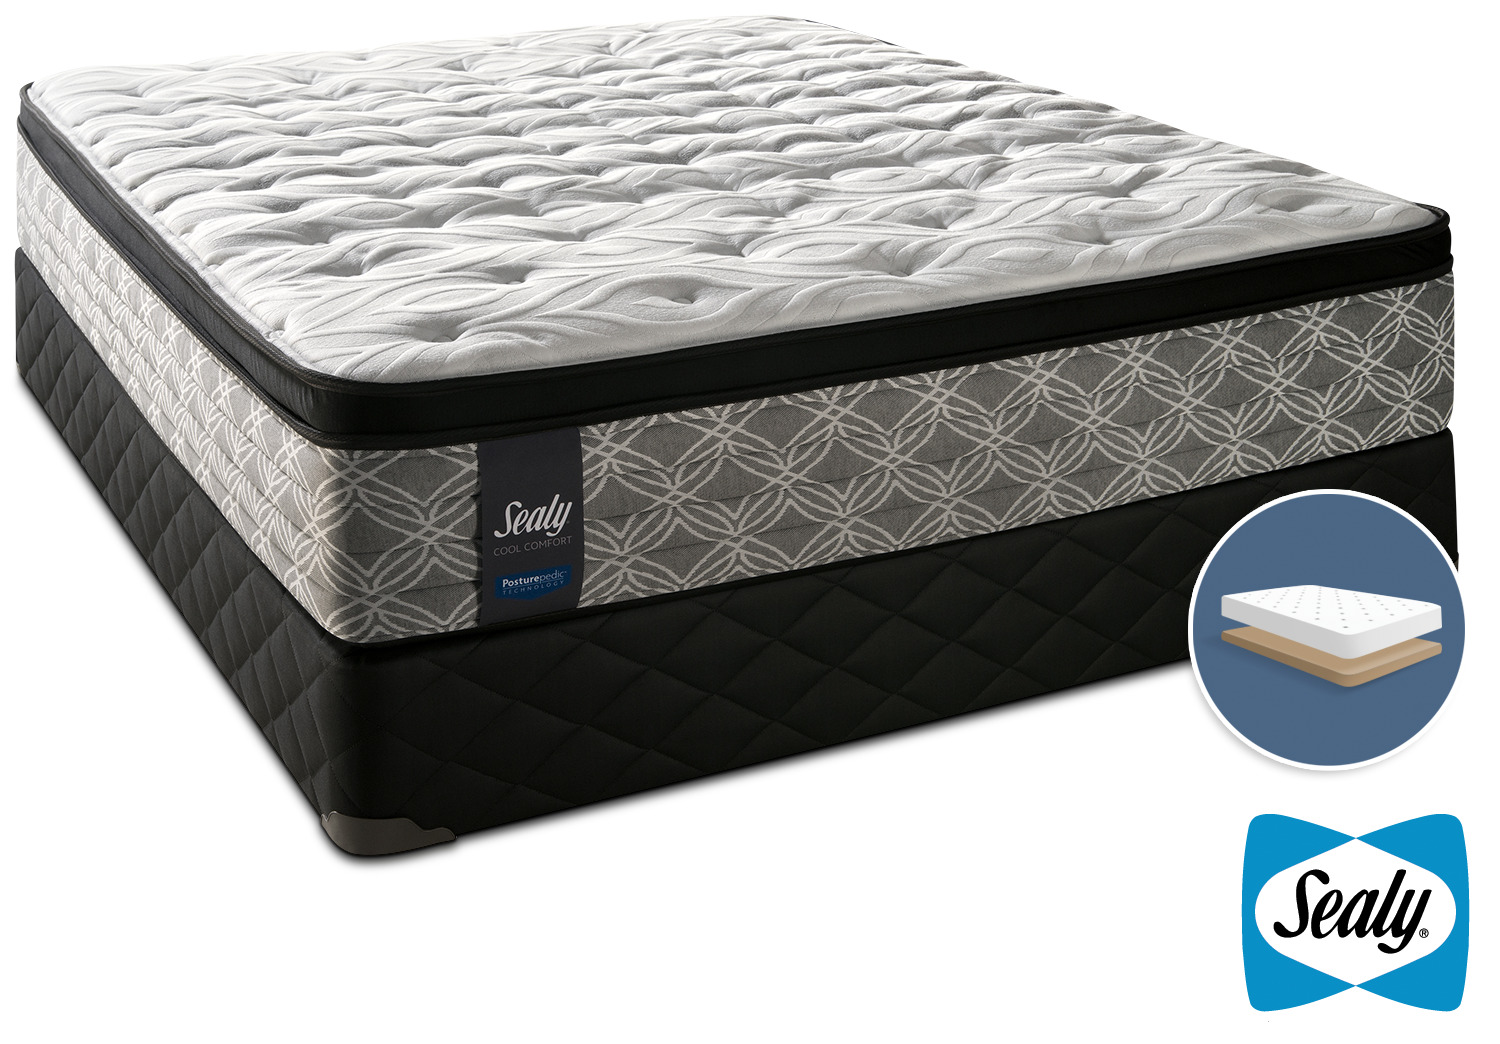 Mattresses and Bedding - Sealy Super Nova Cushion Firm Full Mattress and Low-Profile Boxspring Set